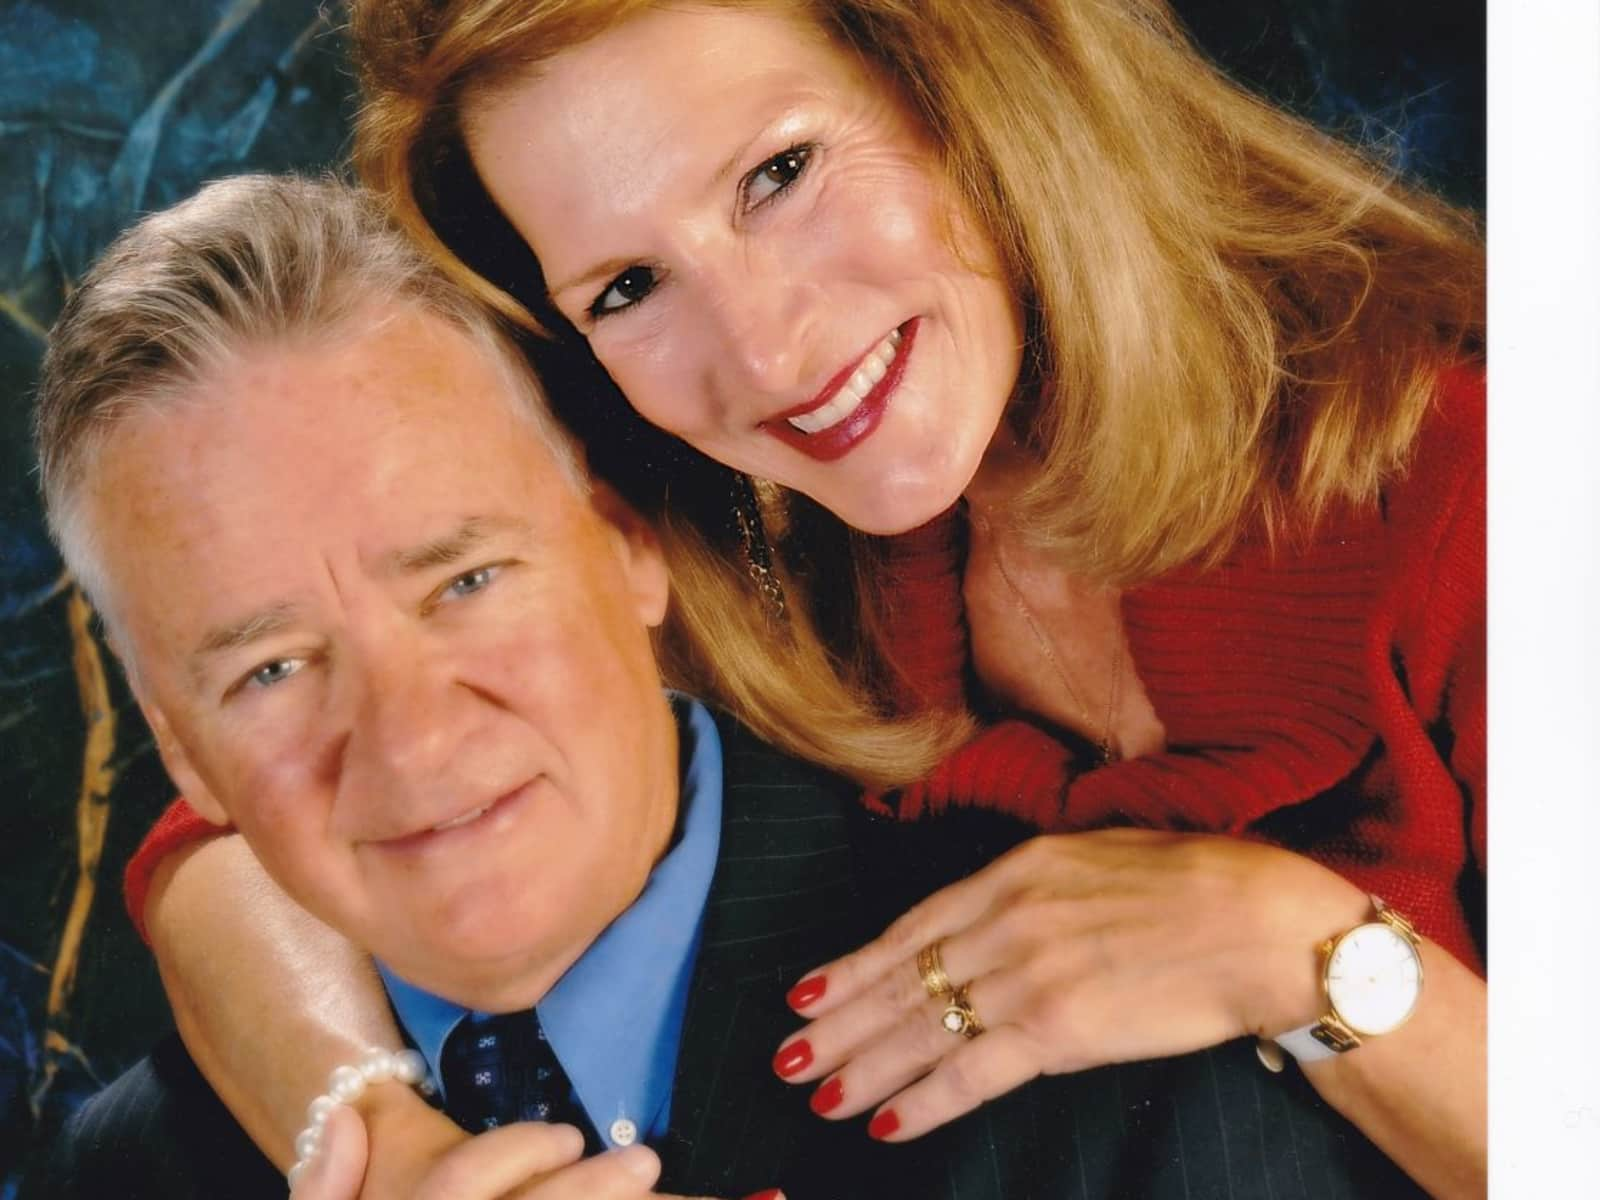 Kenneth & Barbara from Warrenton, Virginia, United States